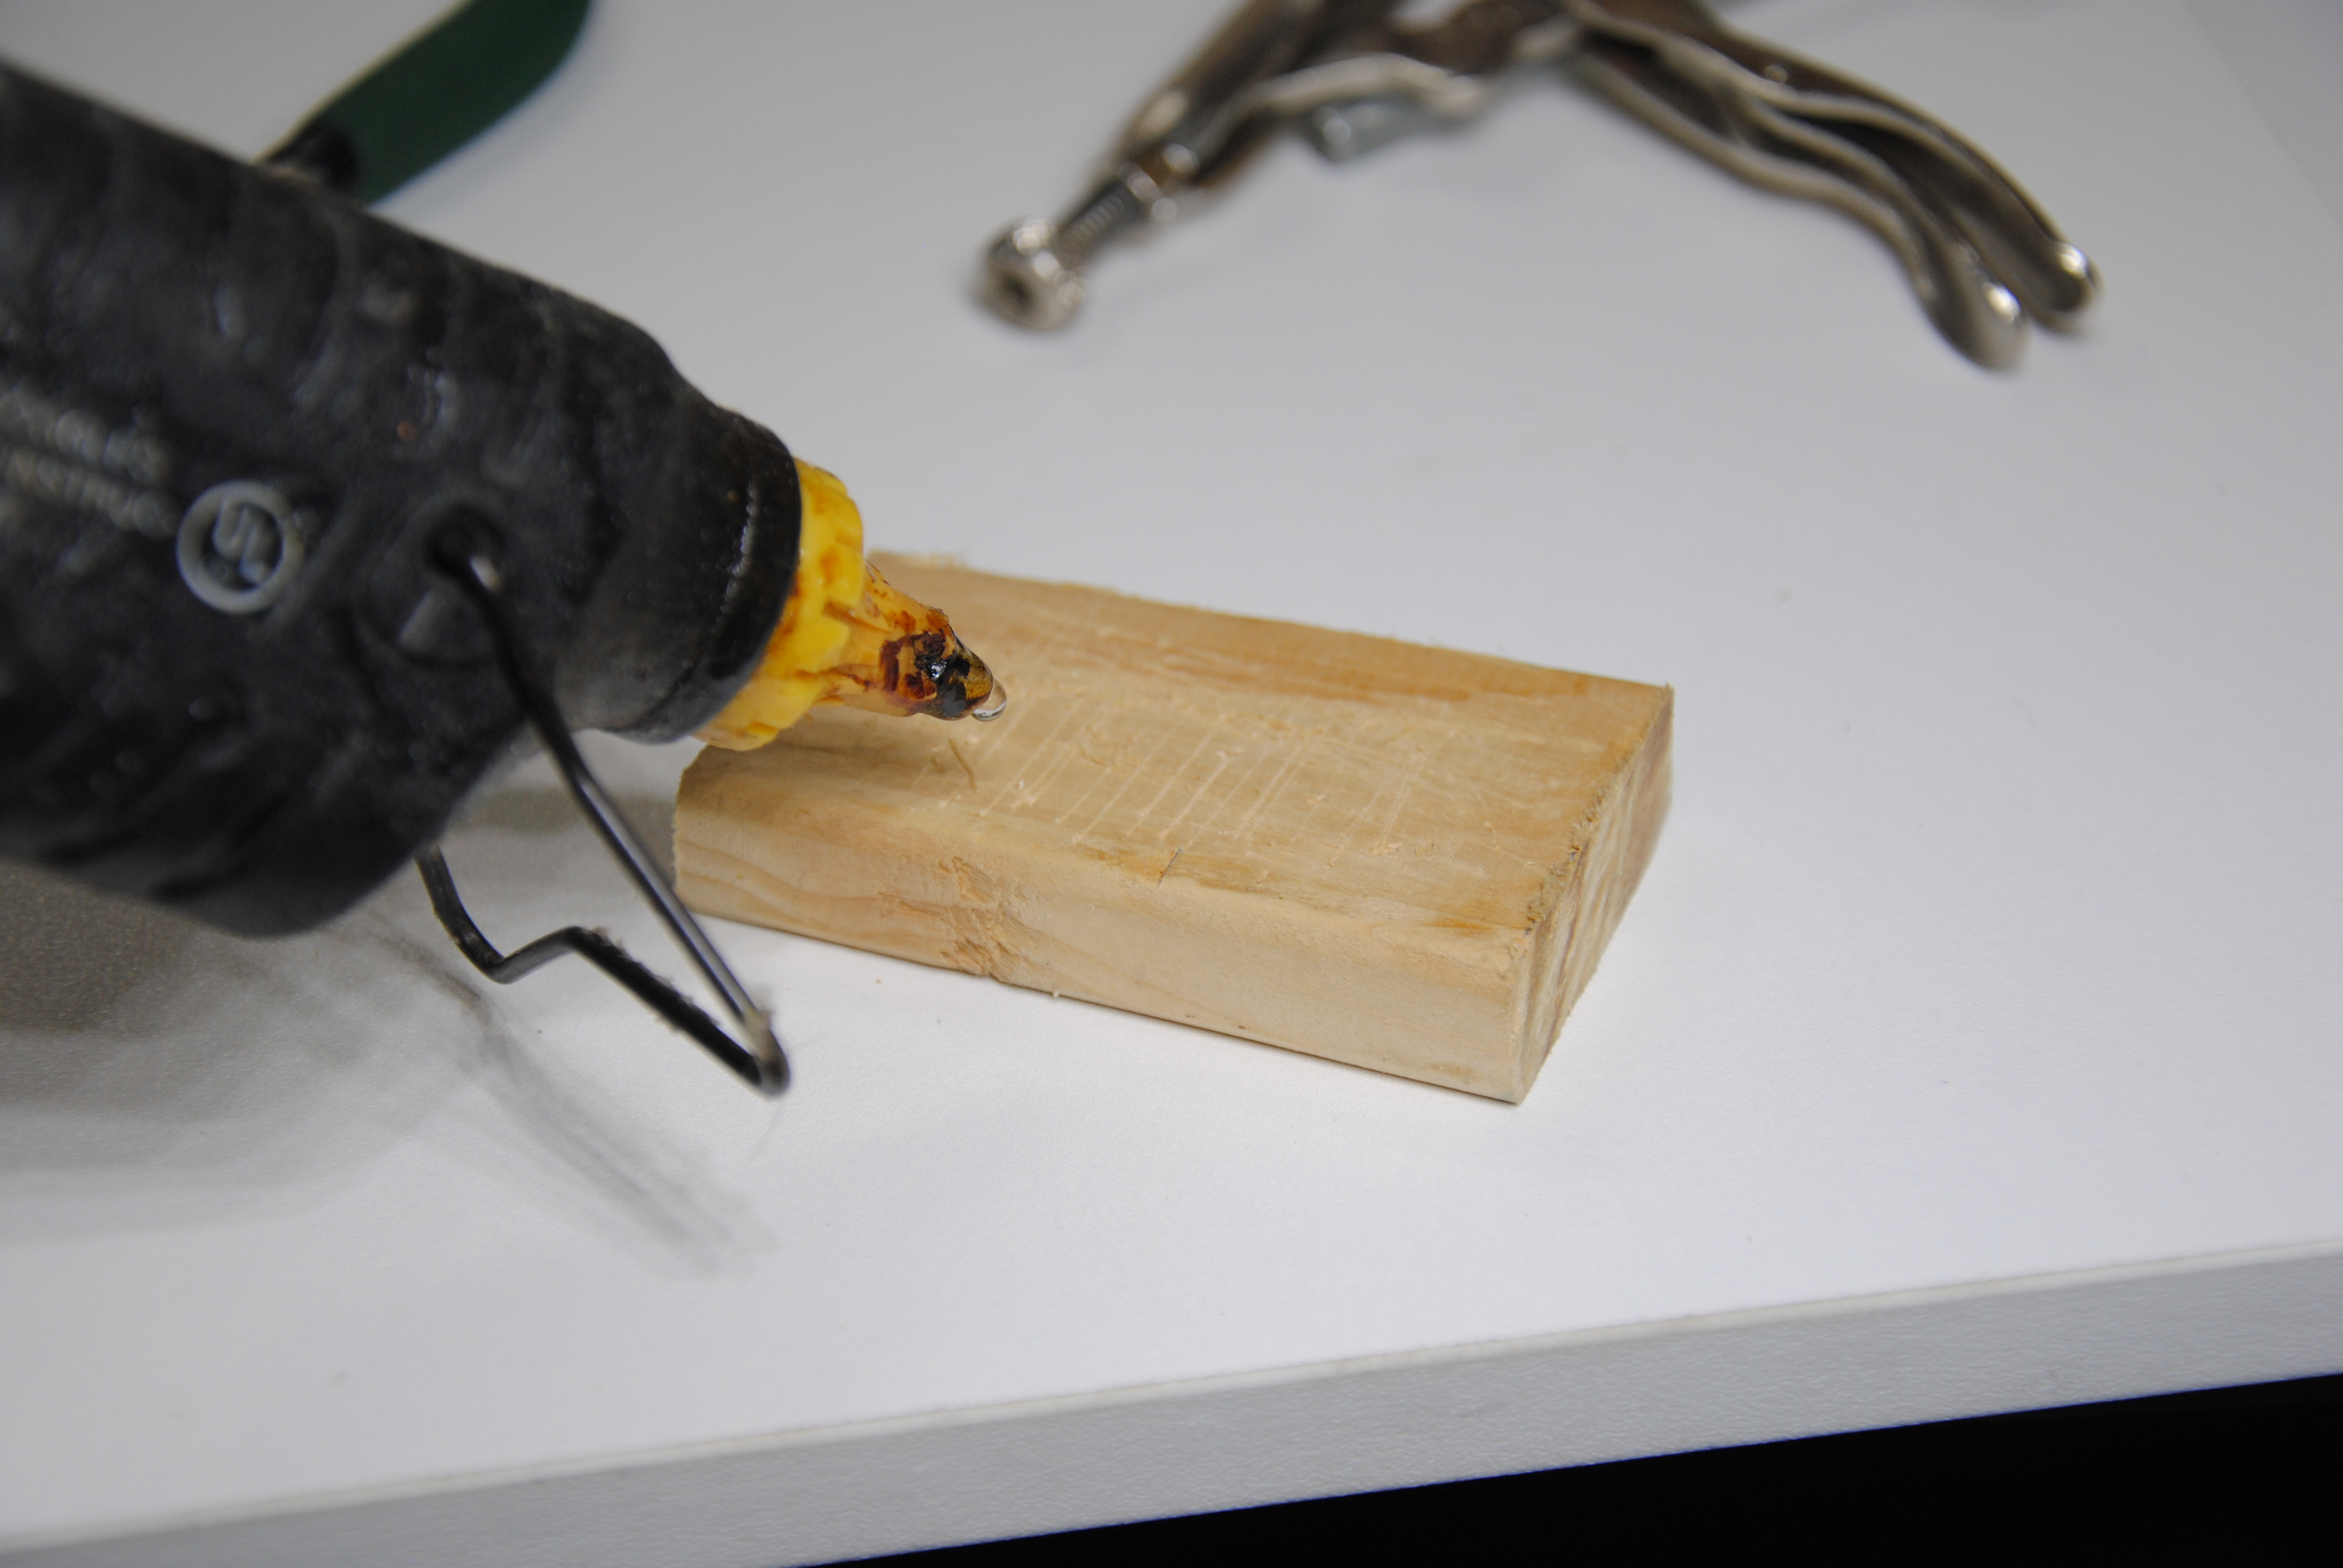 Picture of Glue the Wooden Pad Onto the Hammer